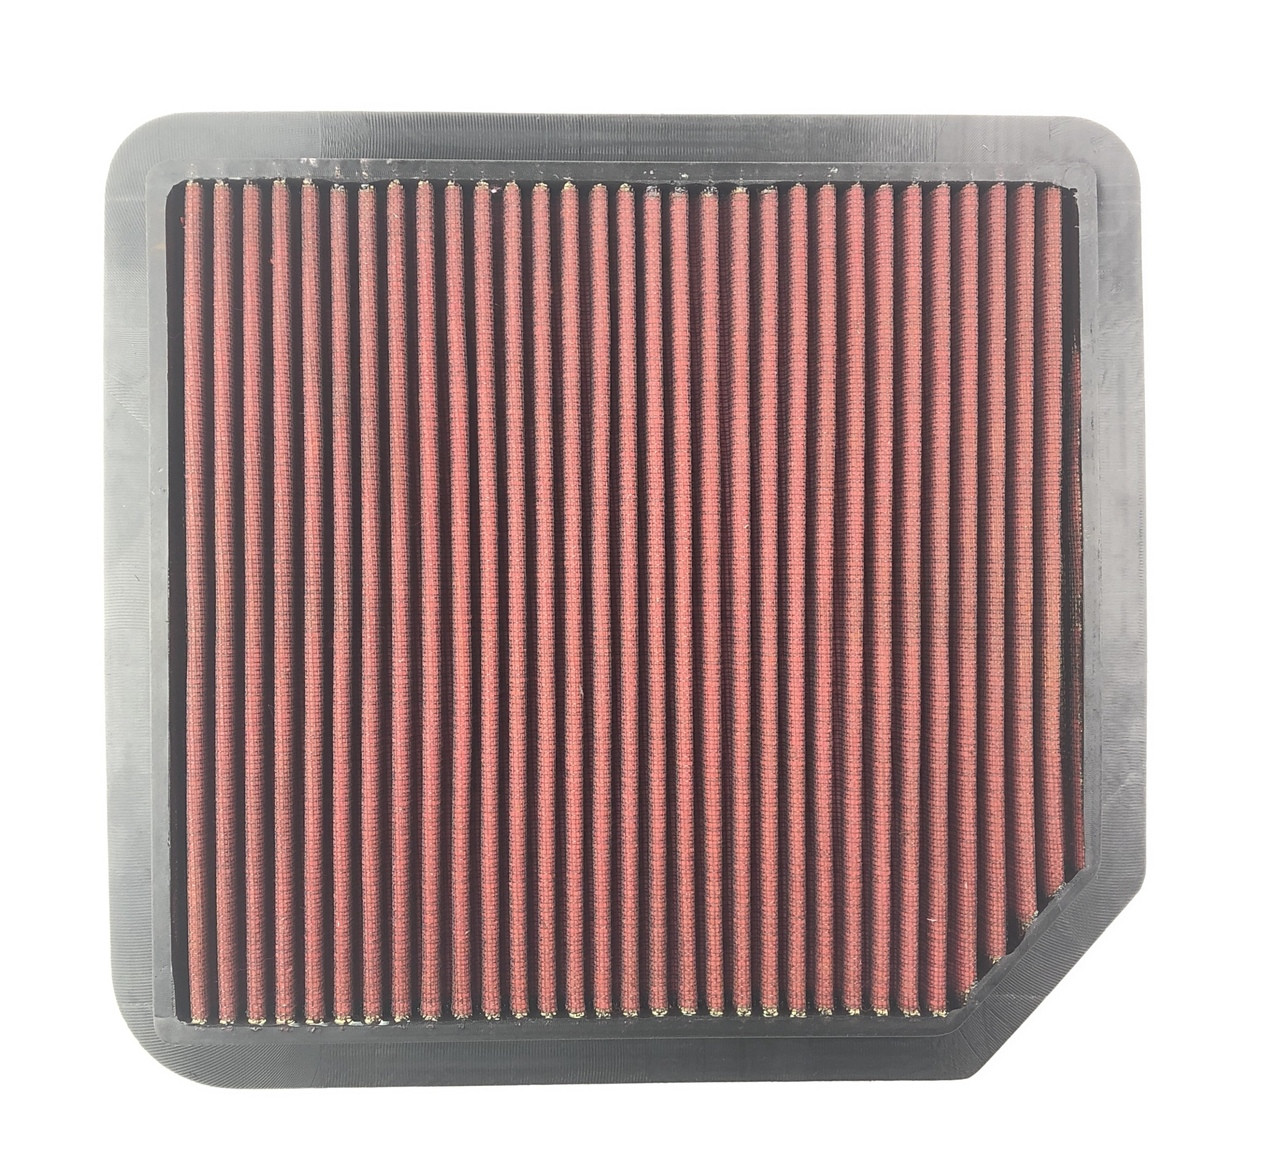 Patrol Y62 Series 5 Hi-Flow Flat Panel Air Filter